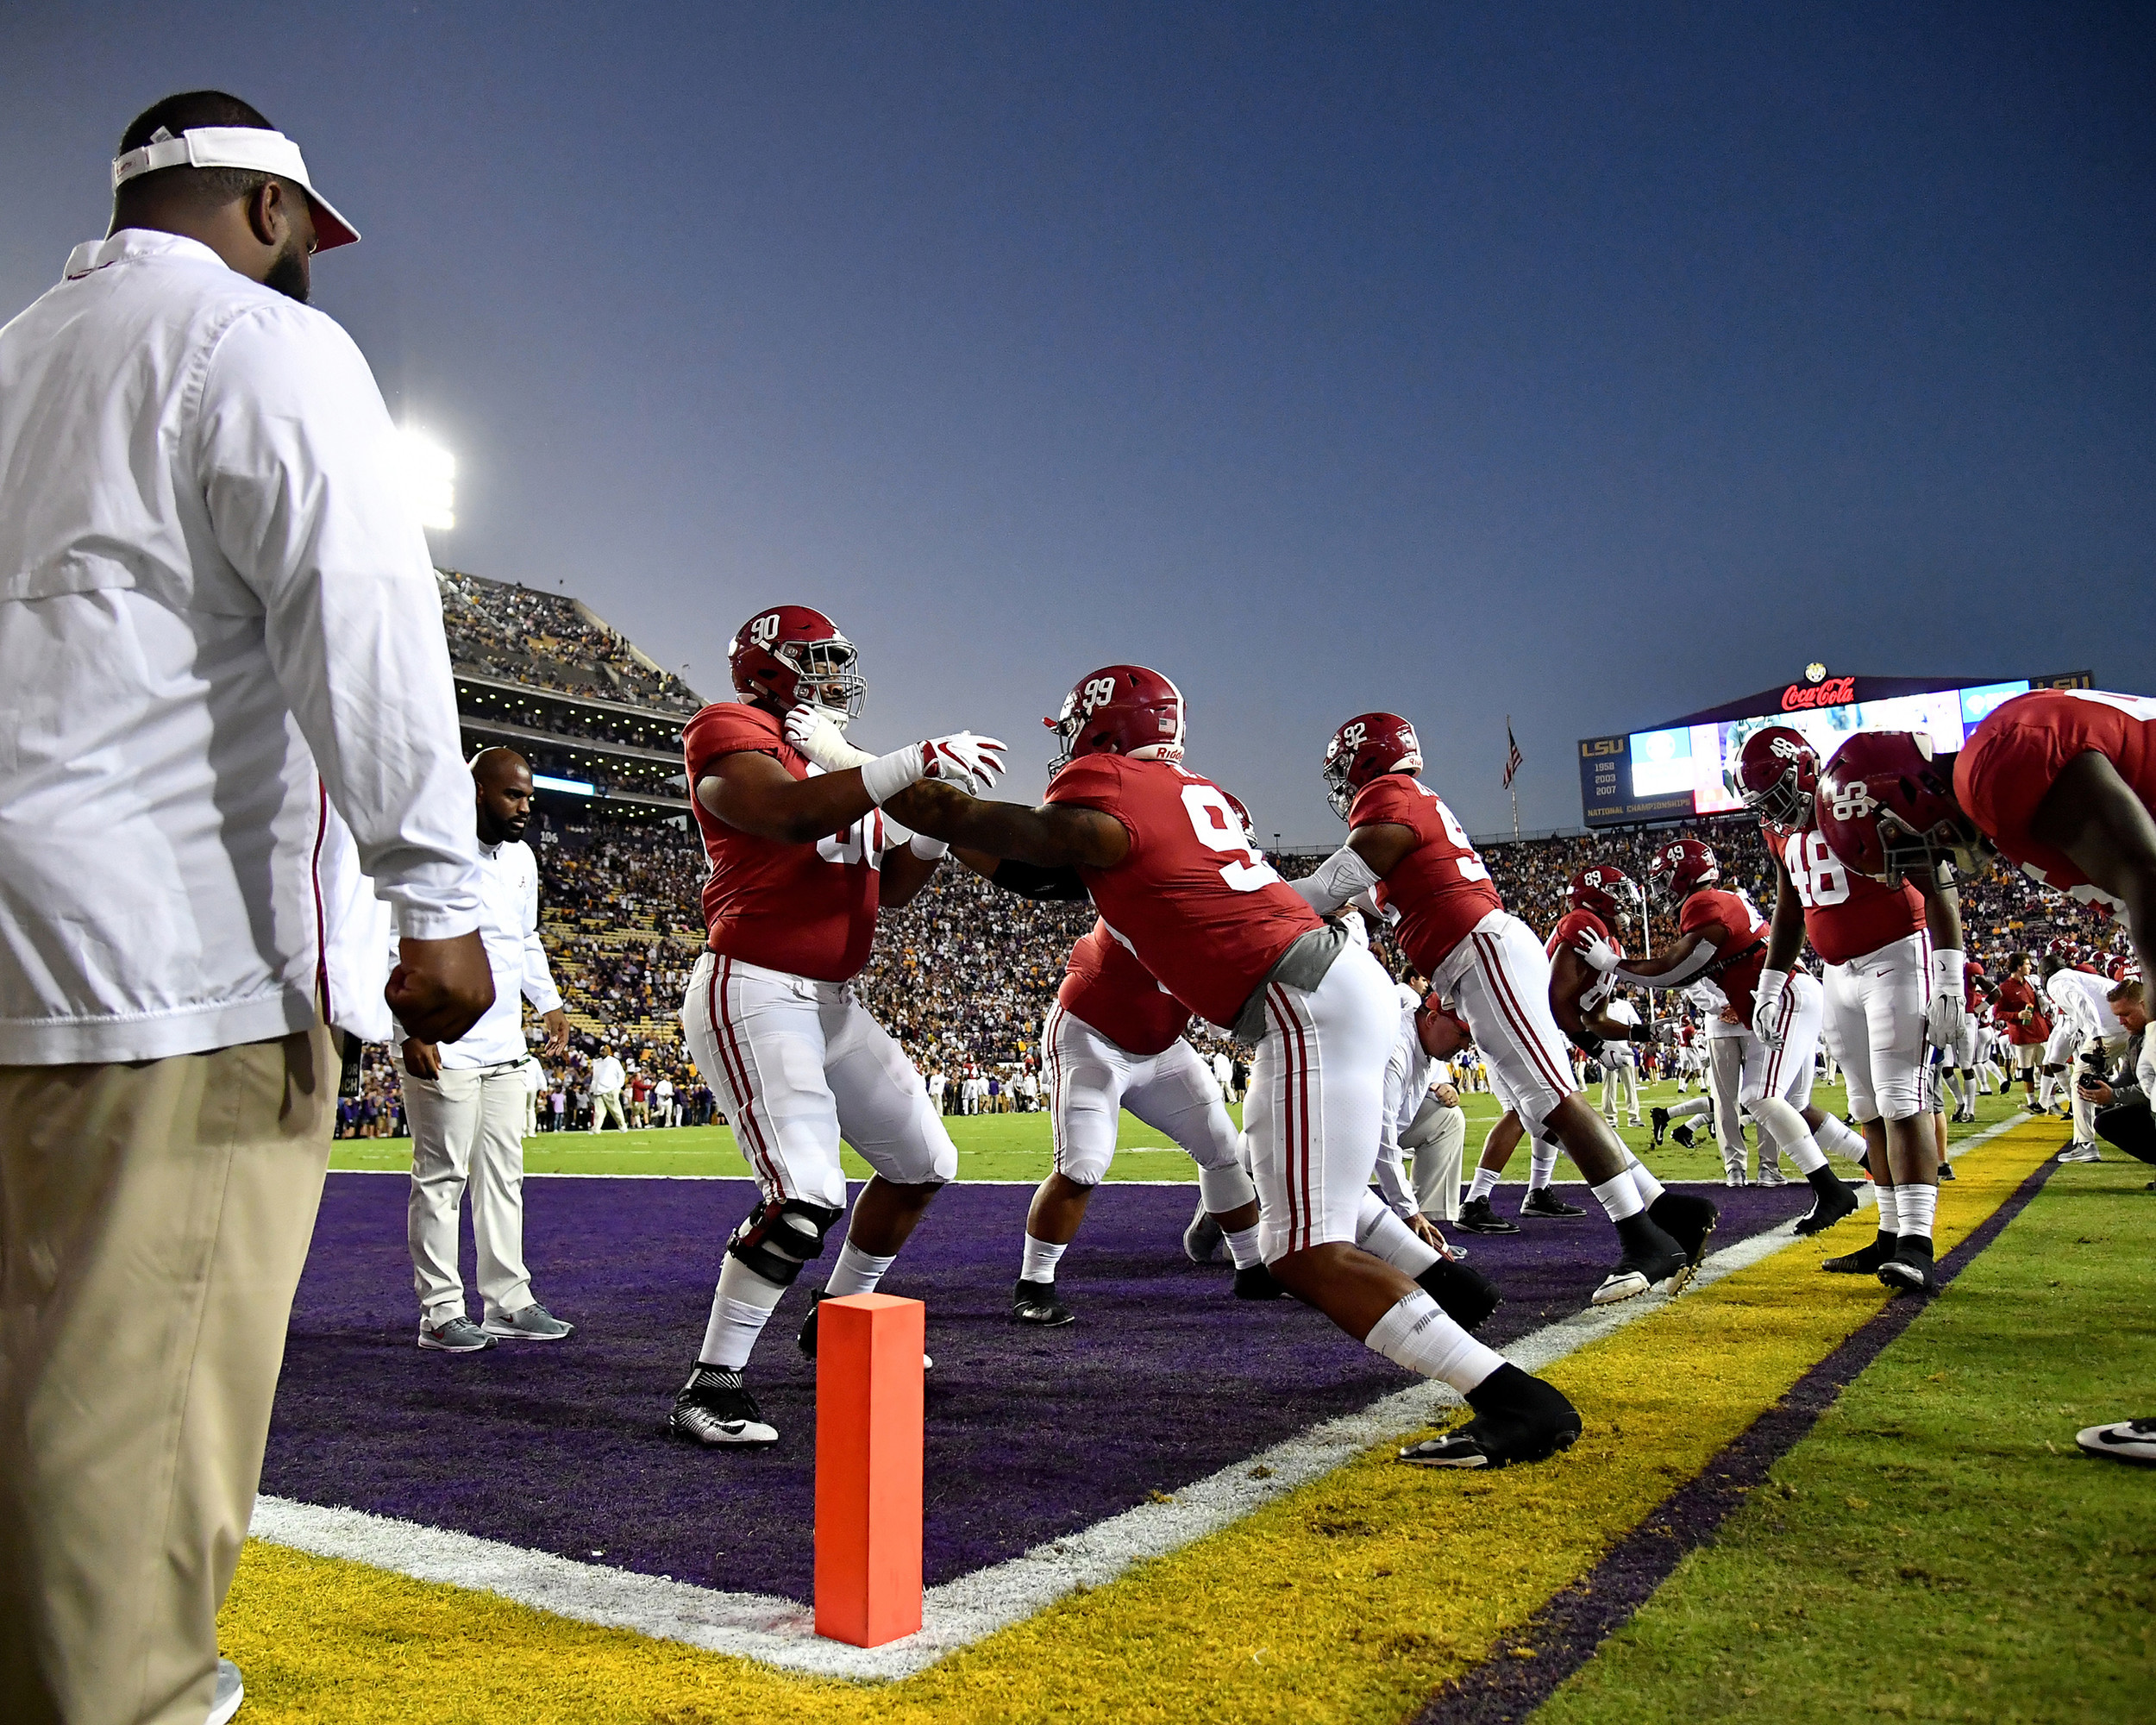 Alabama runs through warmup drills prior to an NCAA football game between the Alabama Crimson Tide and the LSU Tigers Saturday, November 3, 2018, at Tiger Stadium in Baton Rouge, La. Alabama wins 29-0. (Photo by Lee Walls)